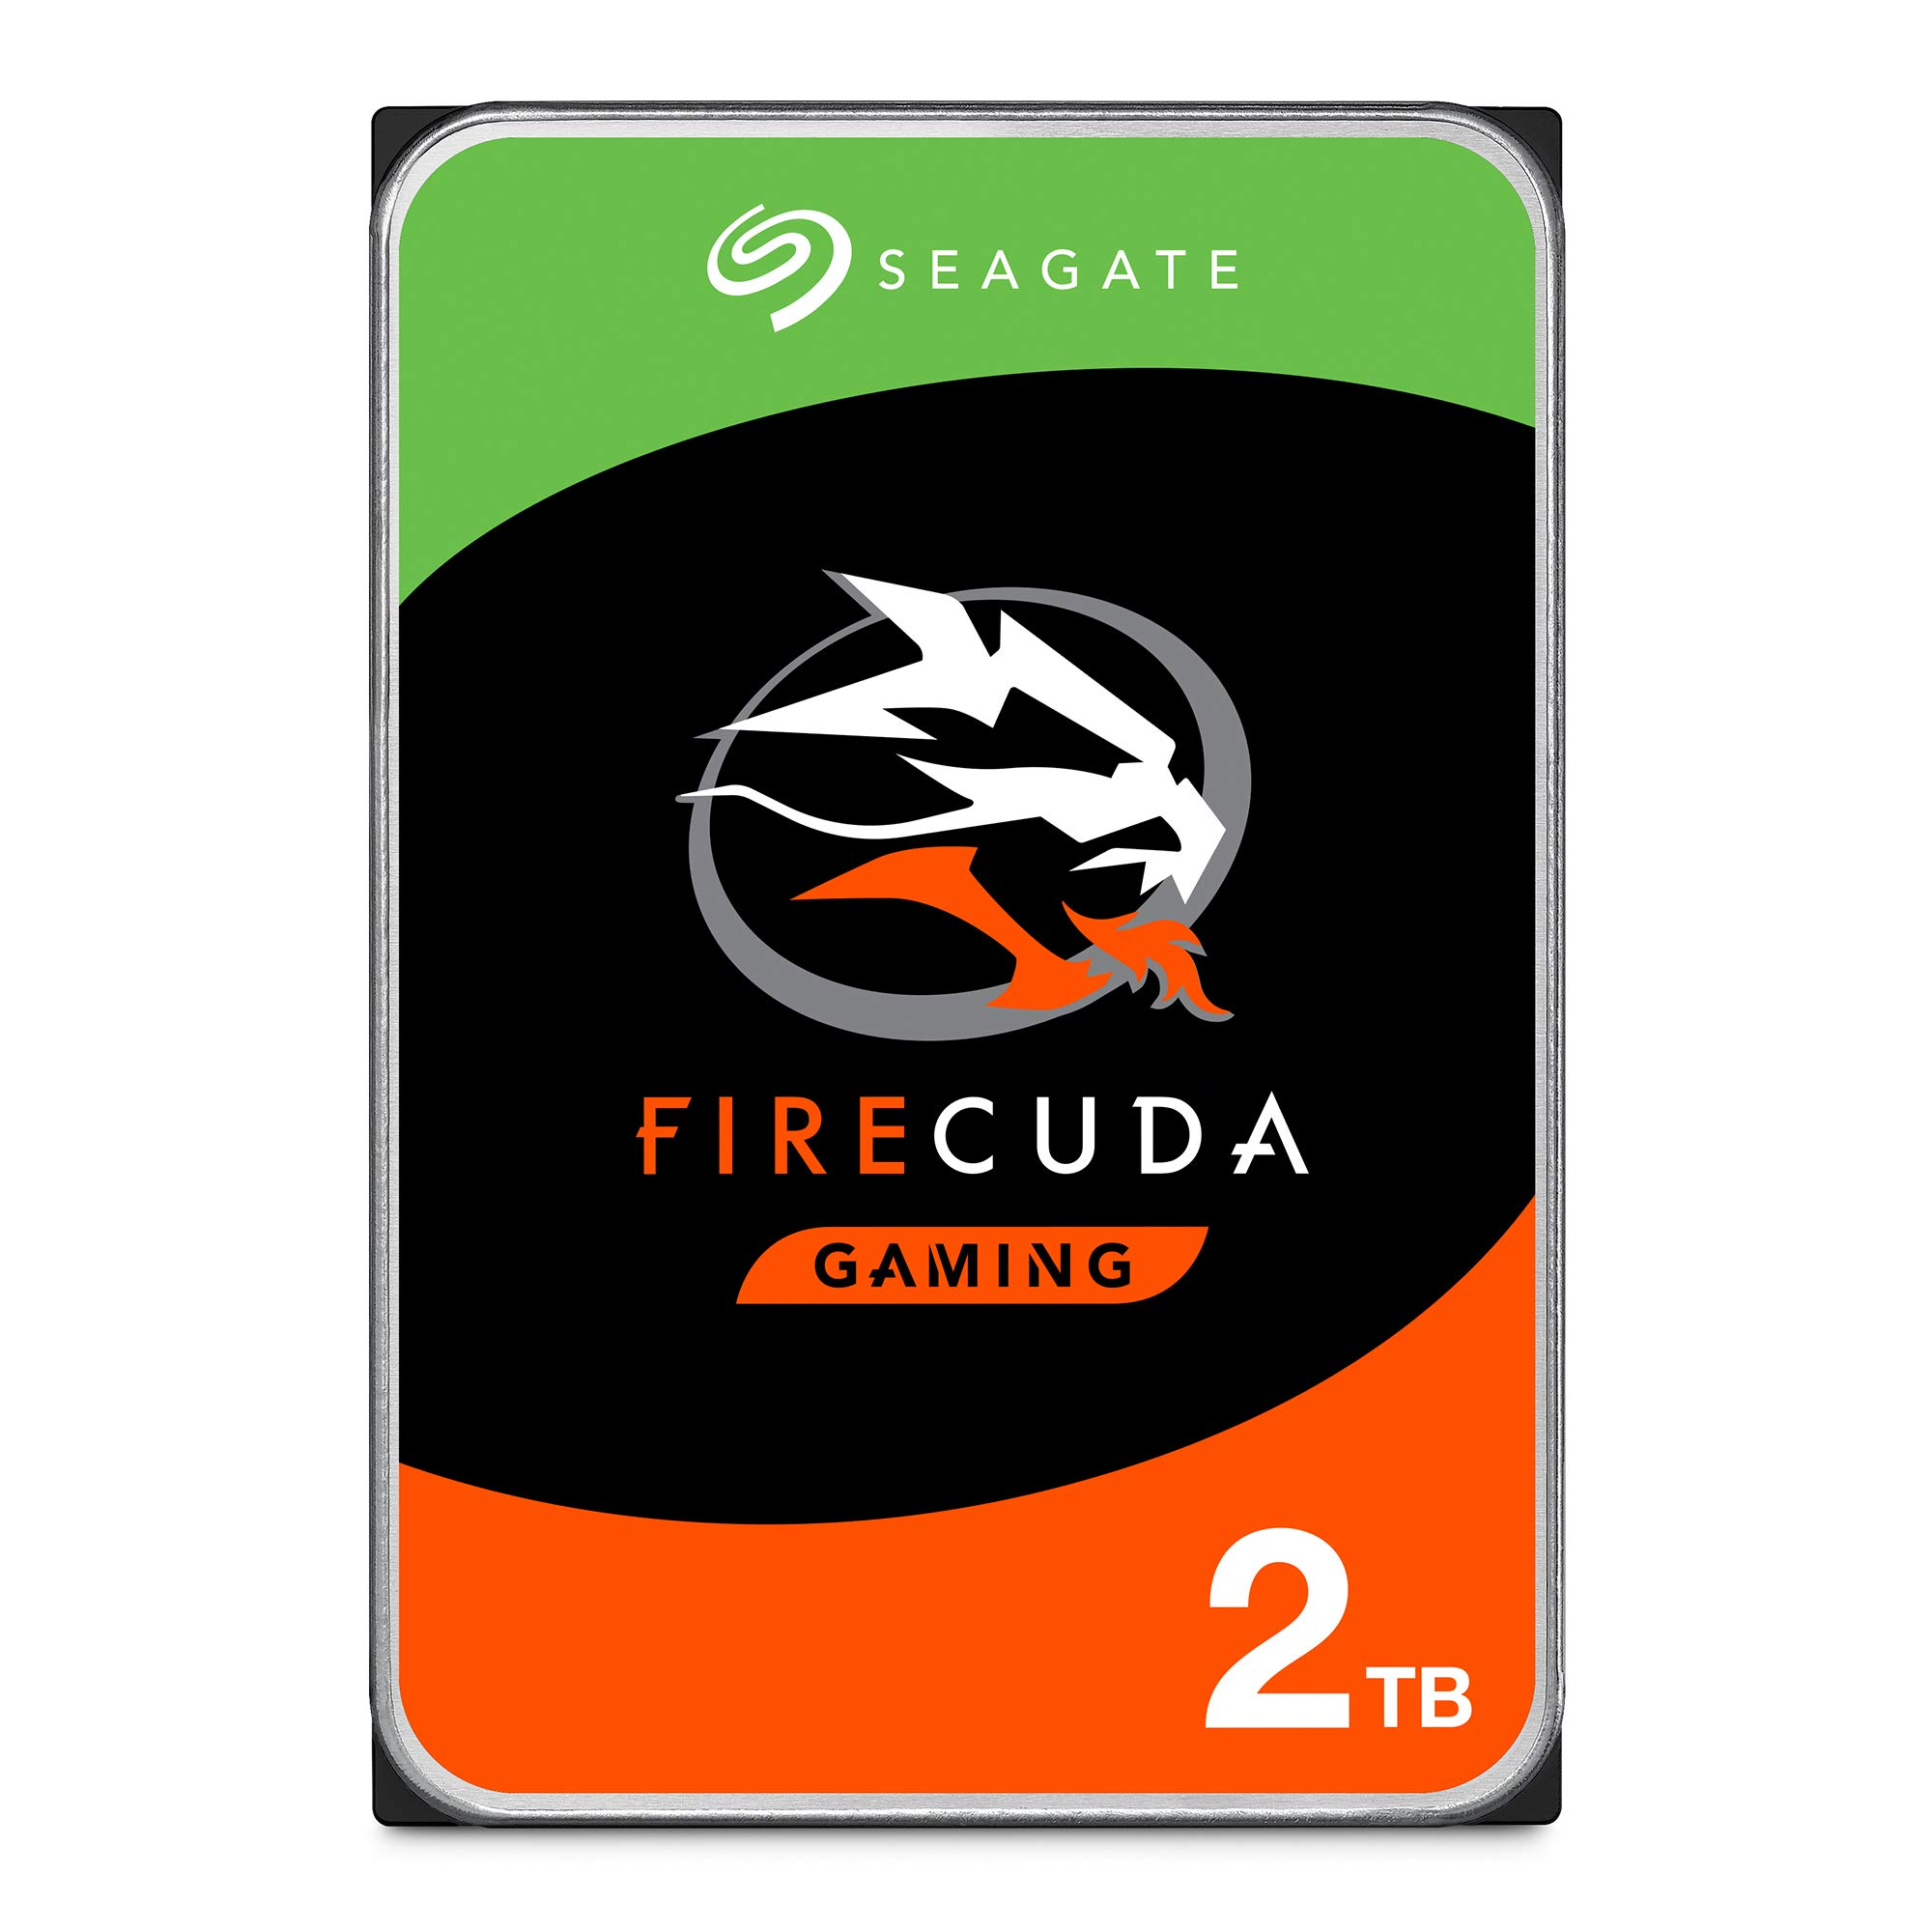 Seagate FireCuda 2TB Solid State Hybrid Drive Performance SSHD - 3.5 Inch SATA 6Gb/s Flash Accelerated for Gaming PC Laptop Frustration Free Packaging (ST2000DX002)